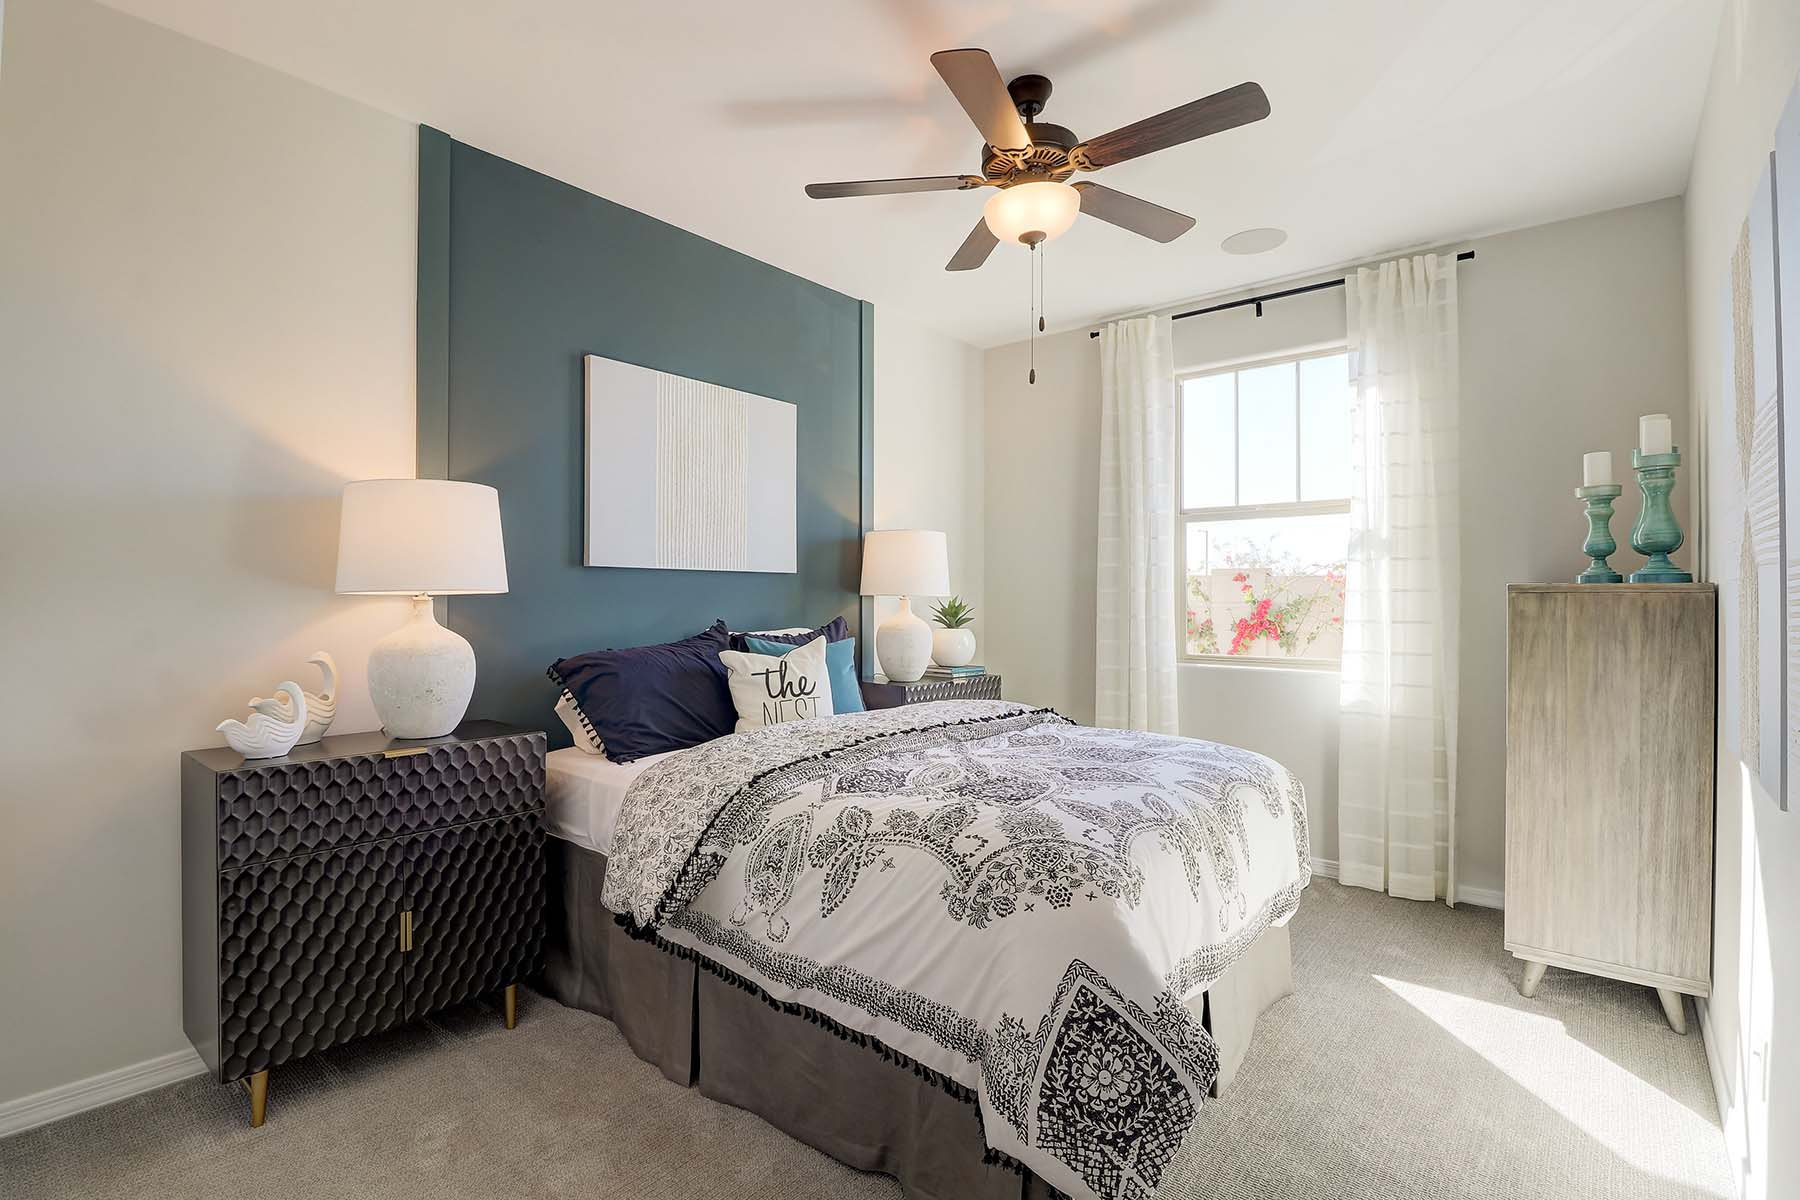 Everly Plan Bedroom at Brookside at Arroyo Seco in Buckeye Arizona by Mattamy Homes